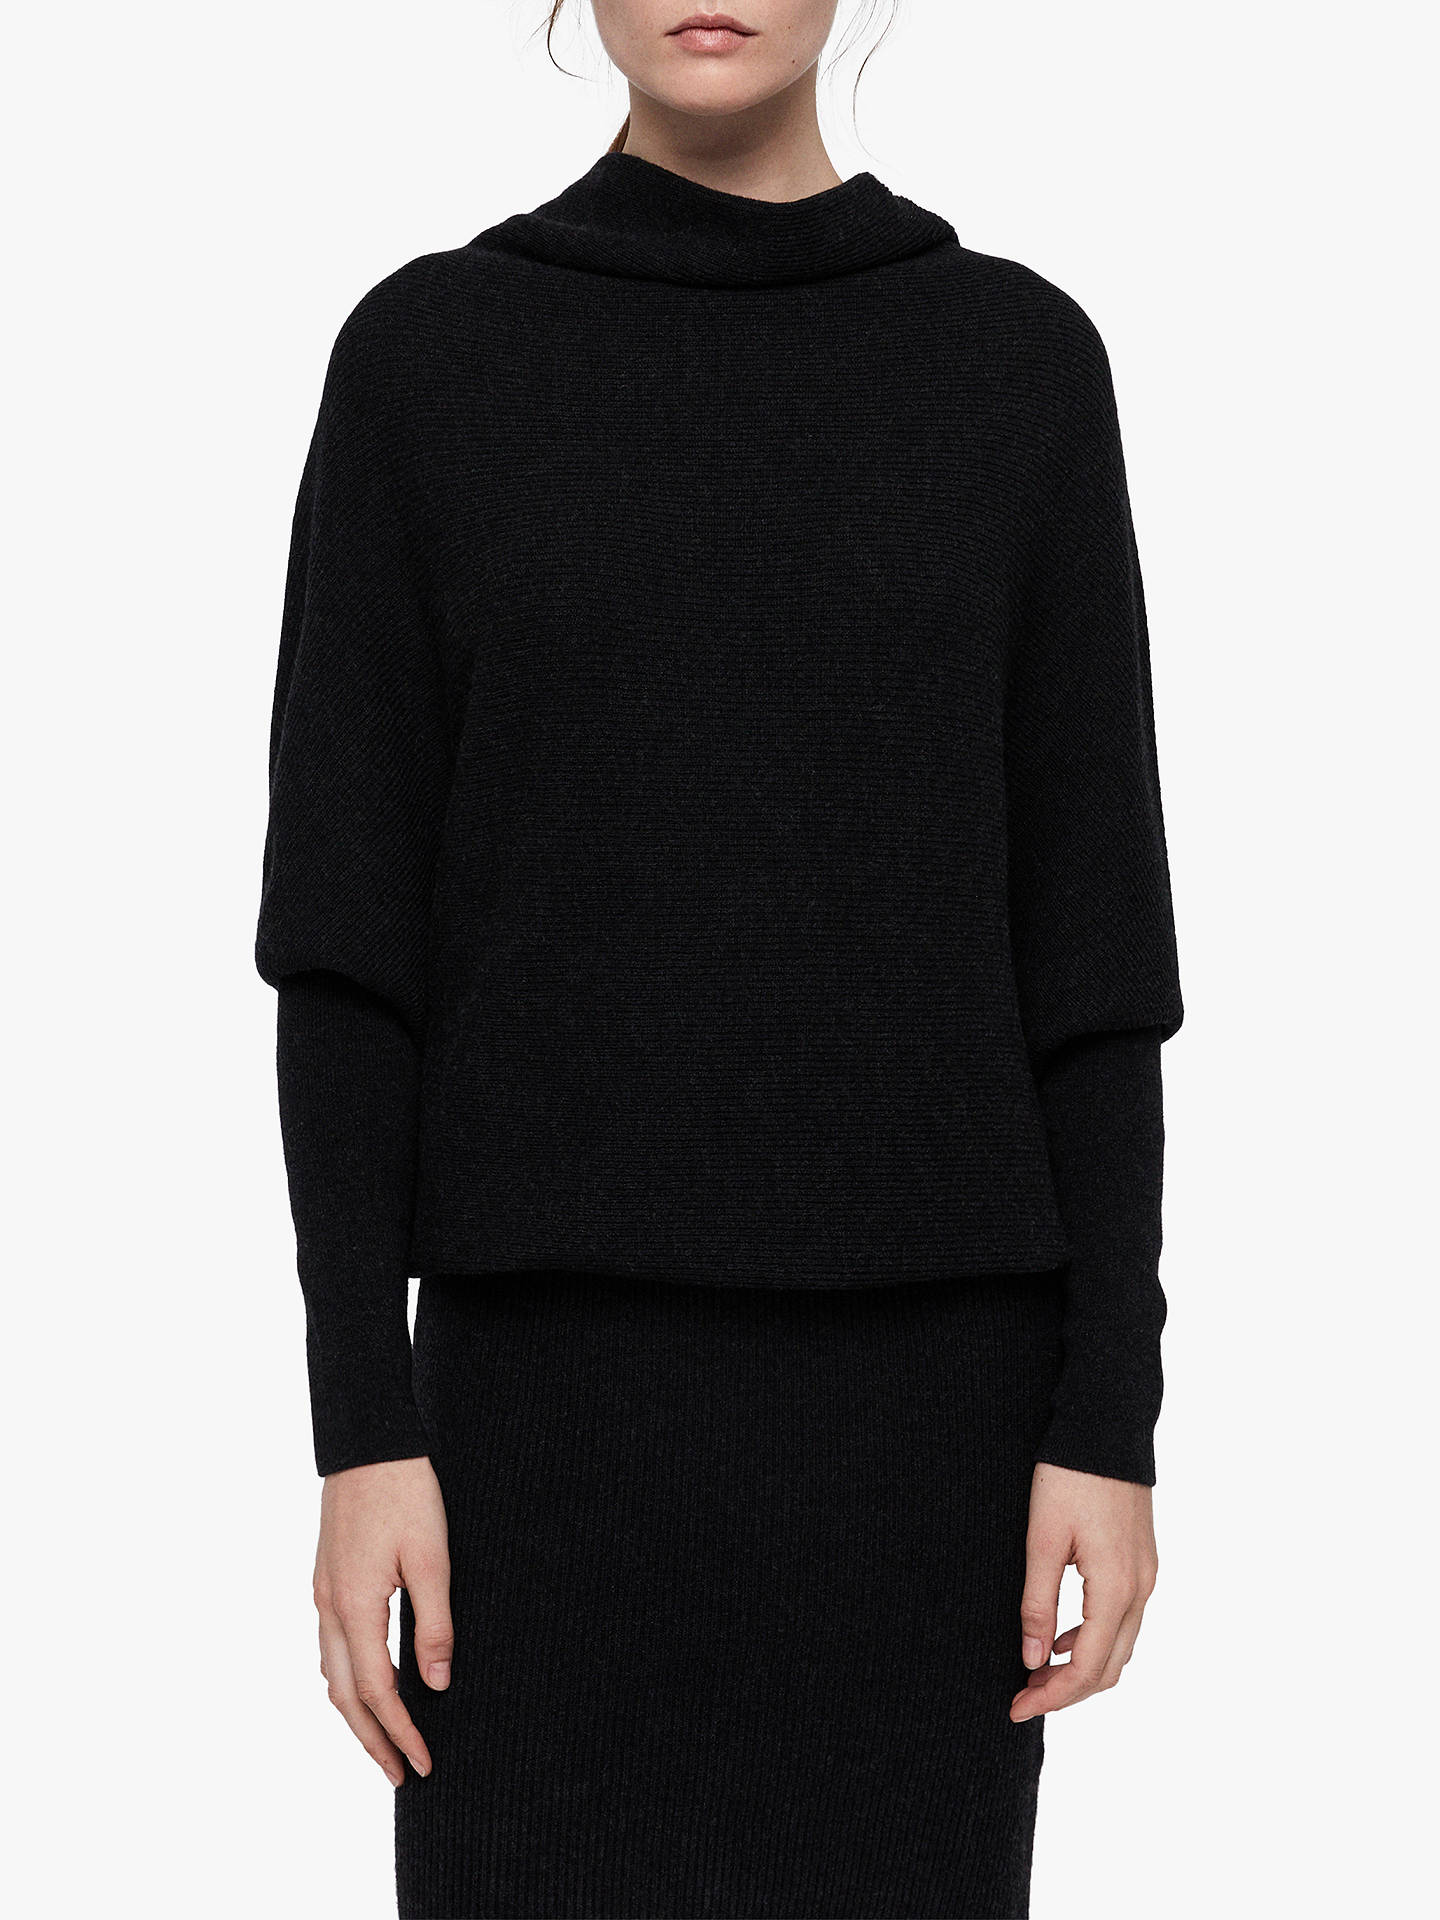 BuyAllSaints Ridley Dress, Cinder Black Marl, S Online at johnlewis.com